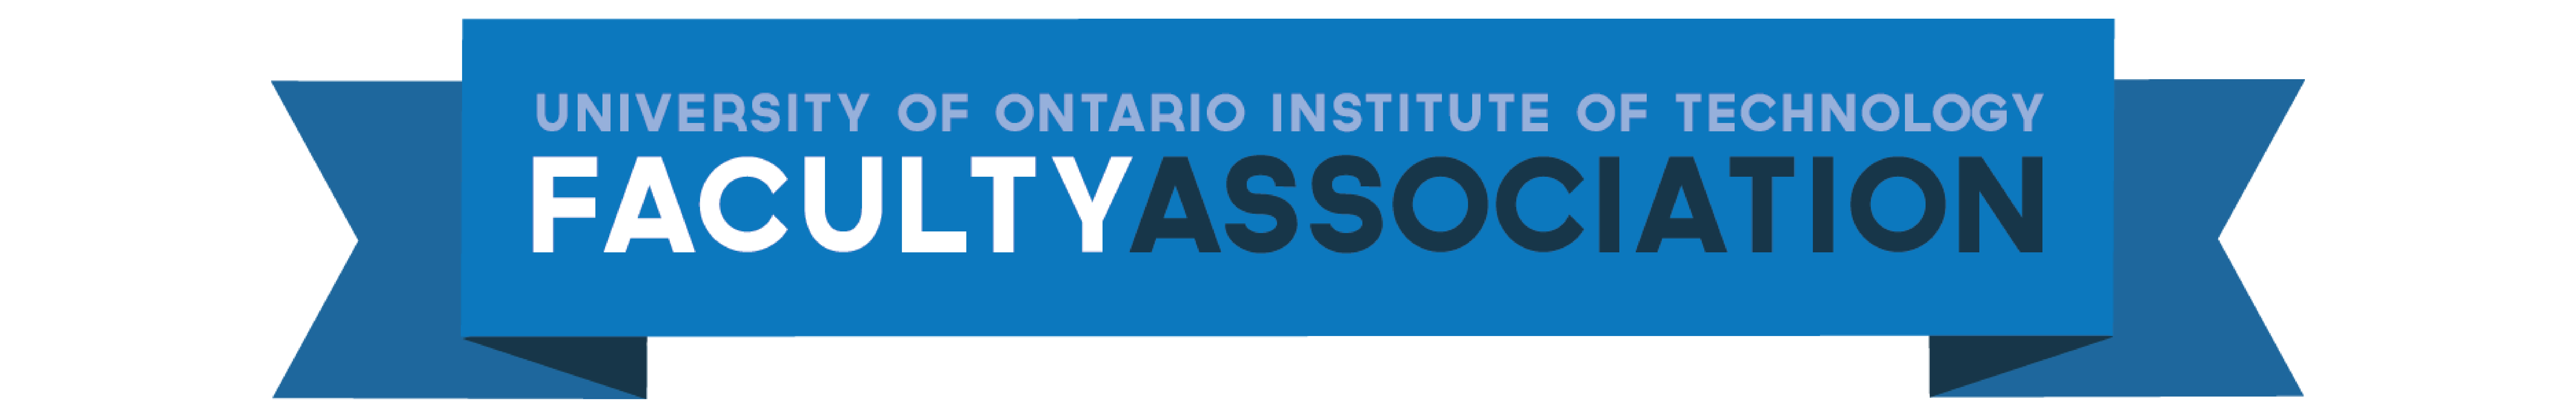 UOIT Faculty Association